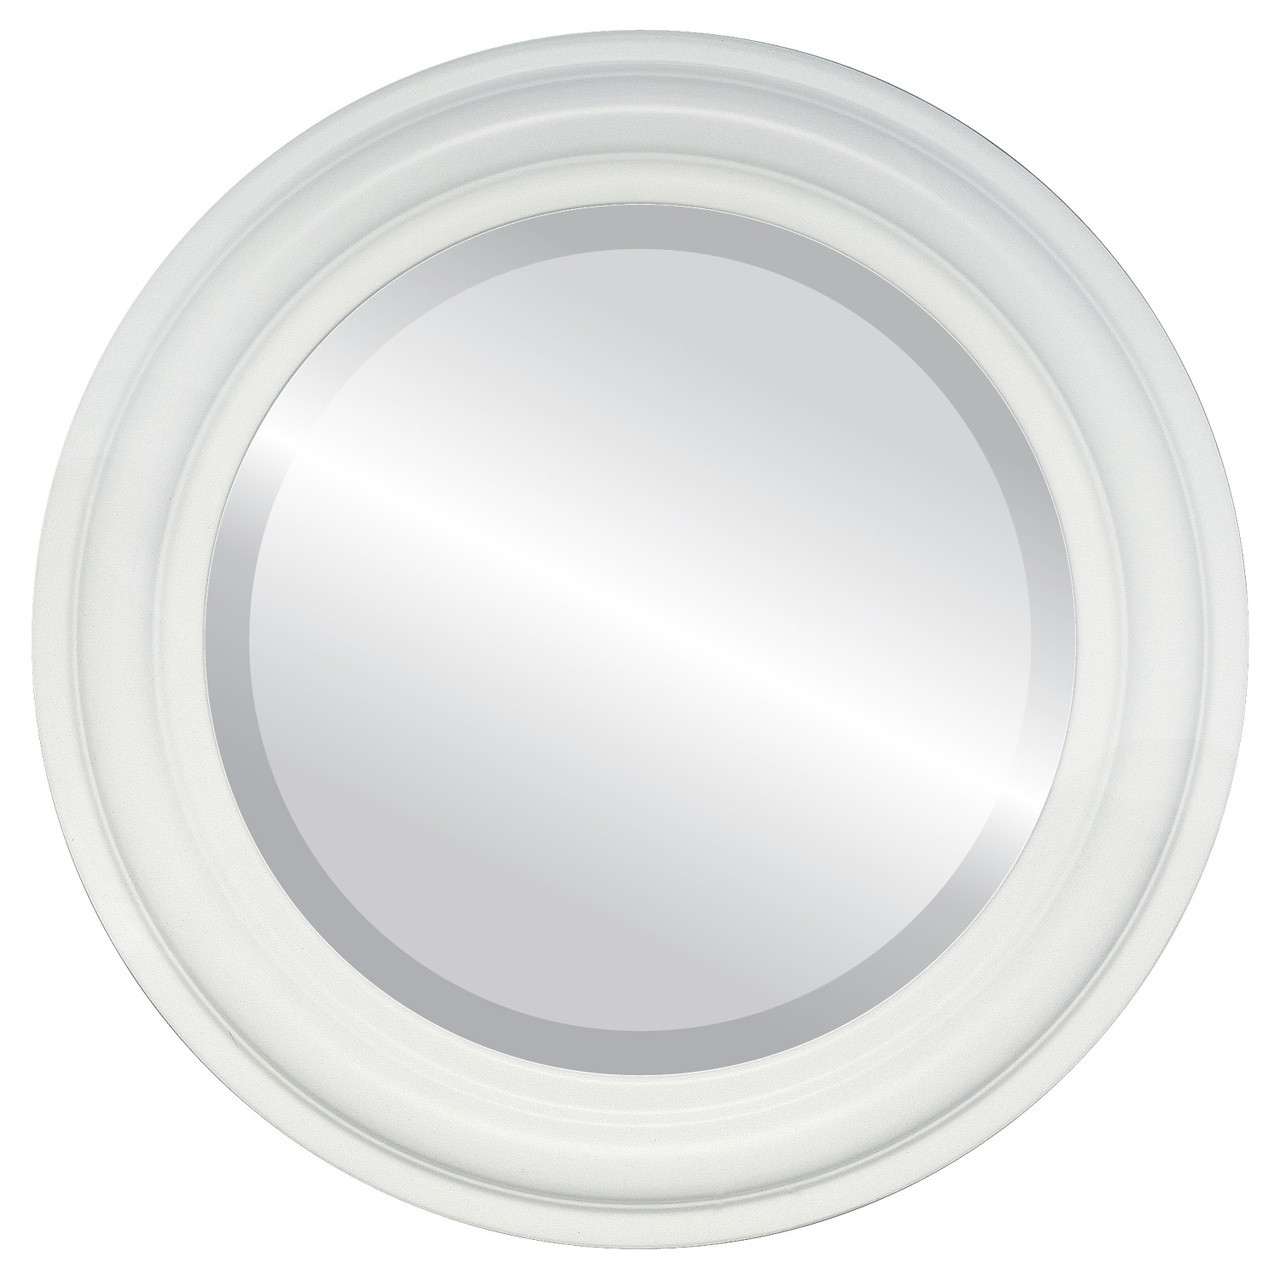 Contemporary White Round Mirrors from $119 | Free Shipping